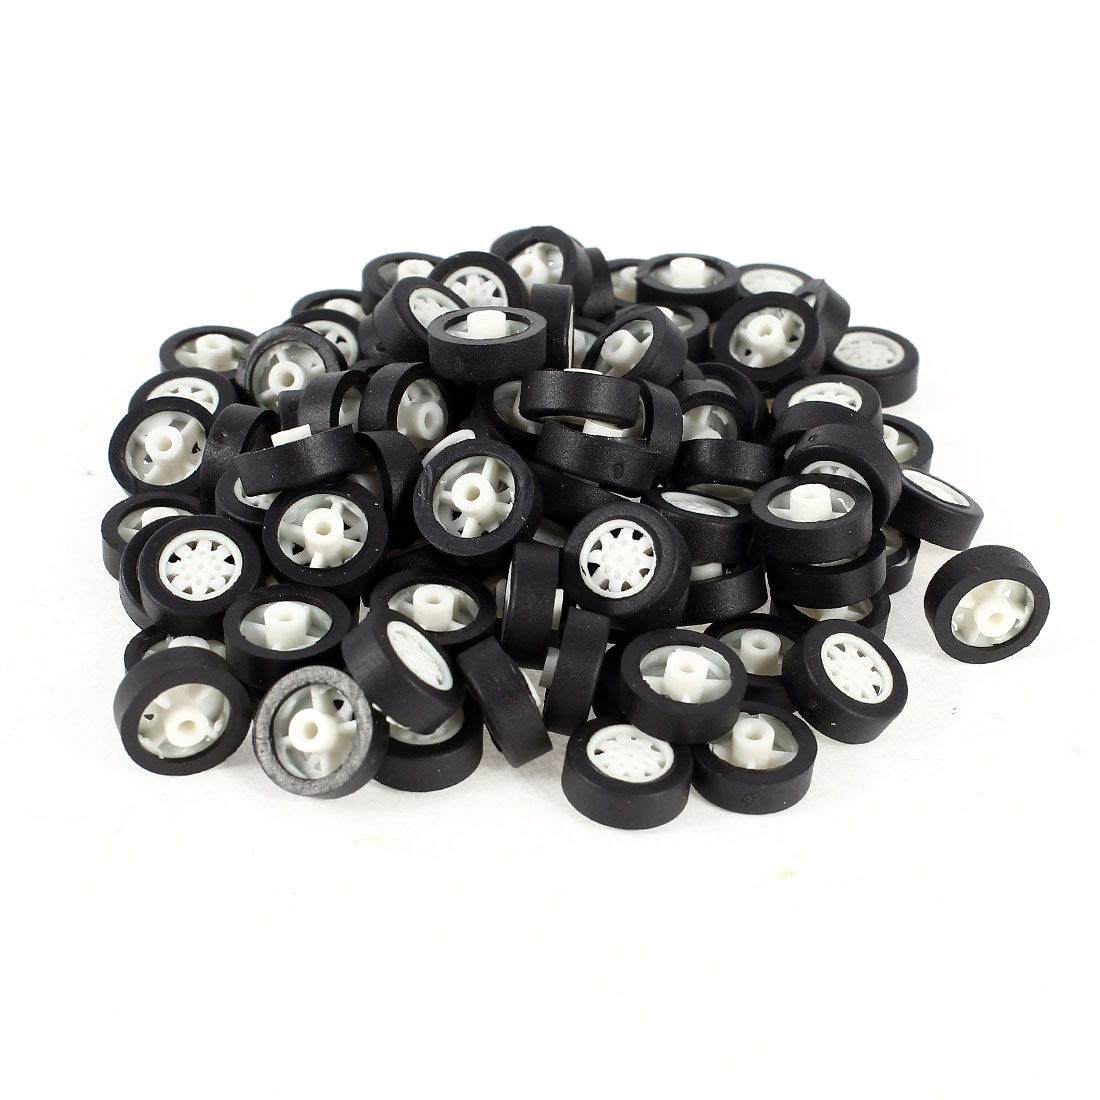 100 Pcs 11mm Dia Rubber Roll Plastic Spoke Car Auto Model Toys Wheels